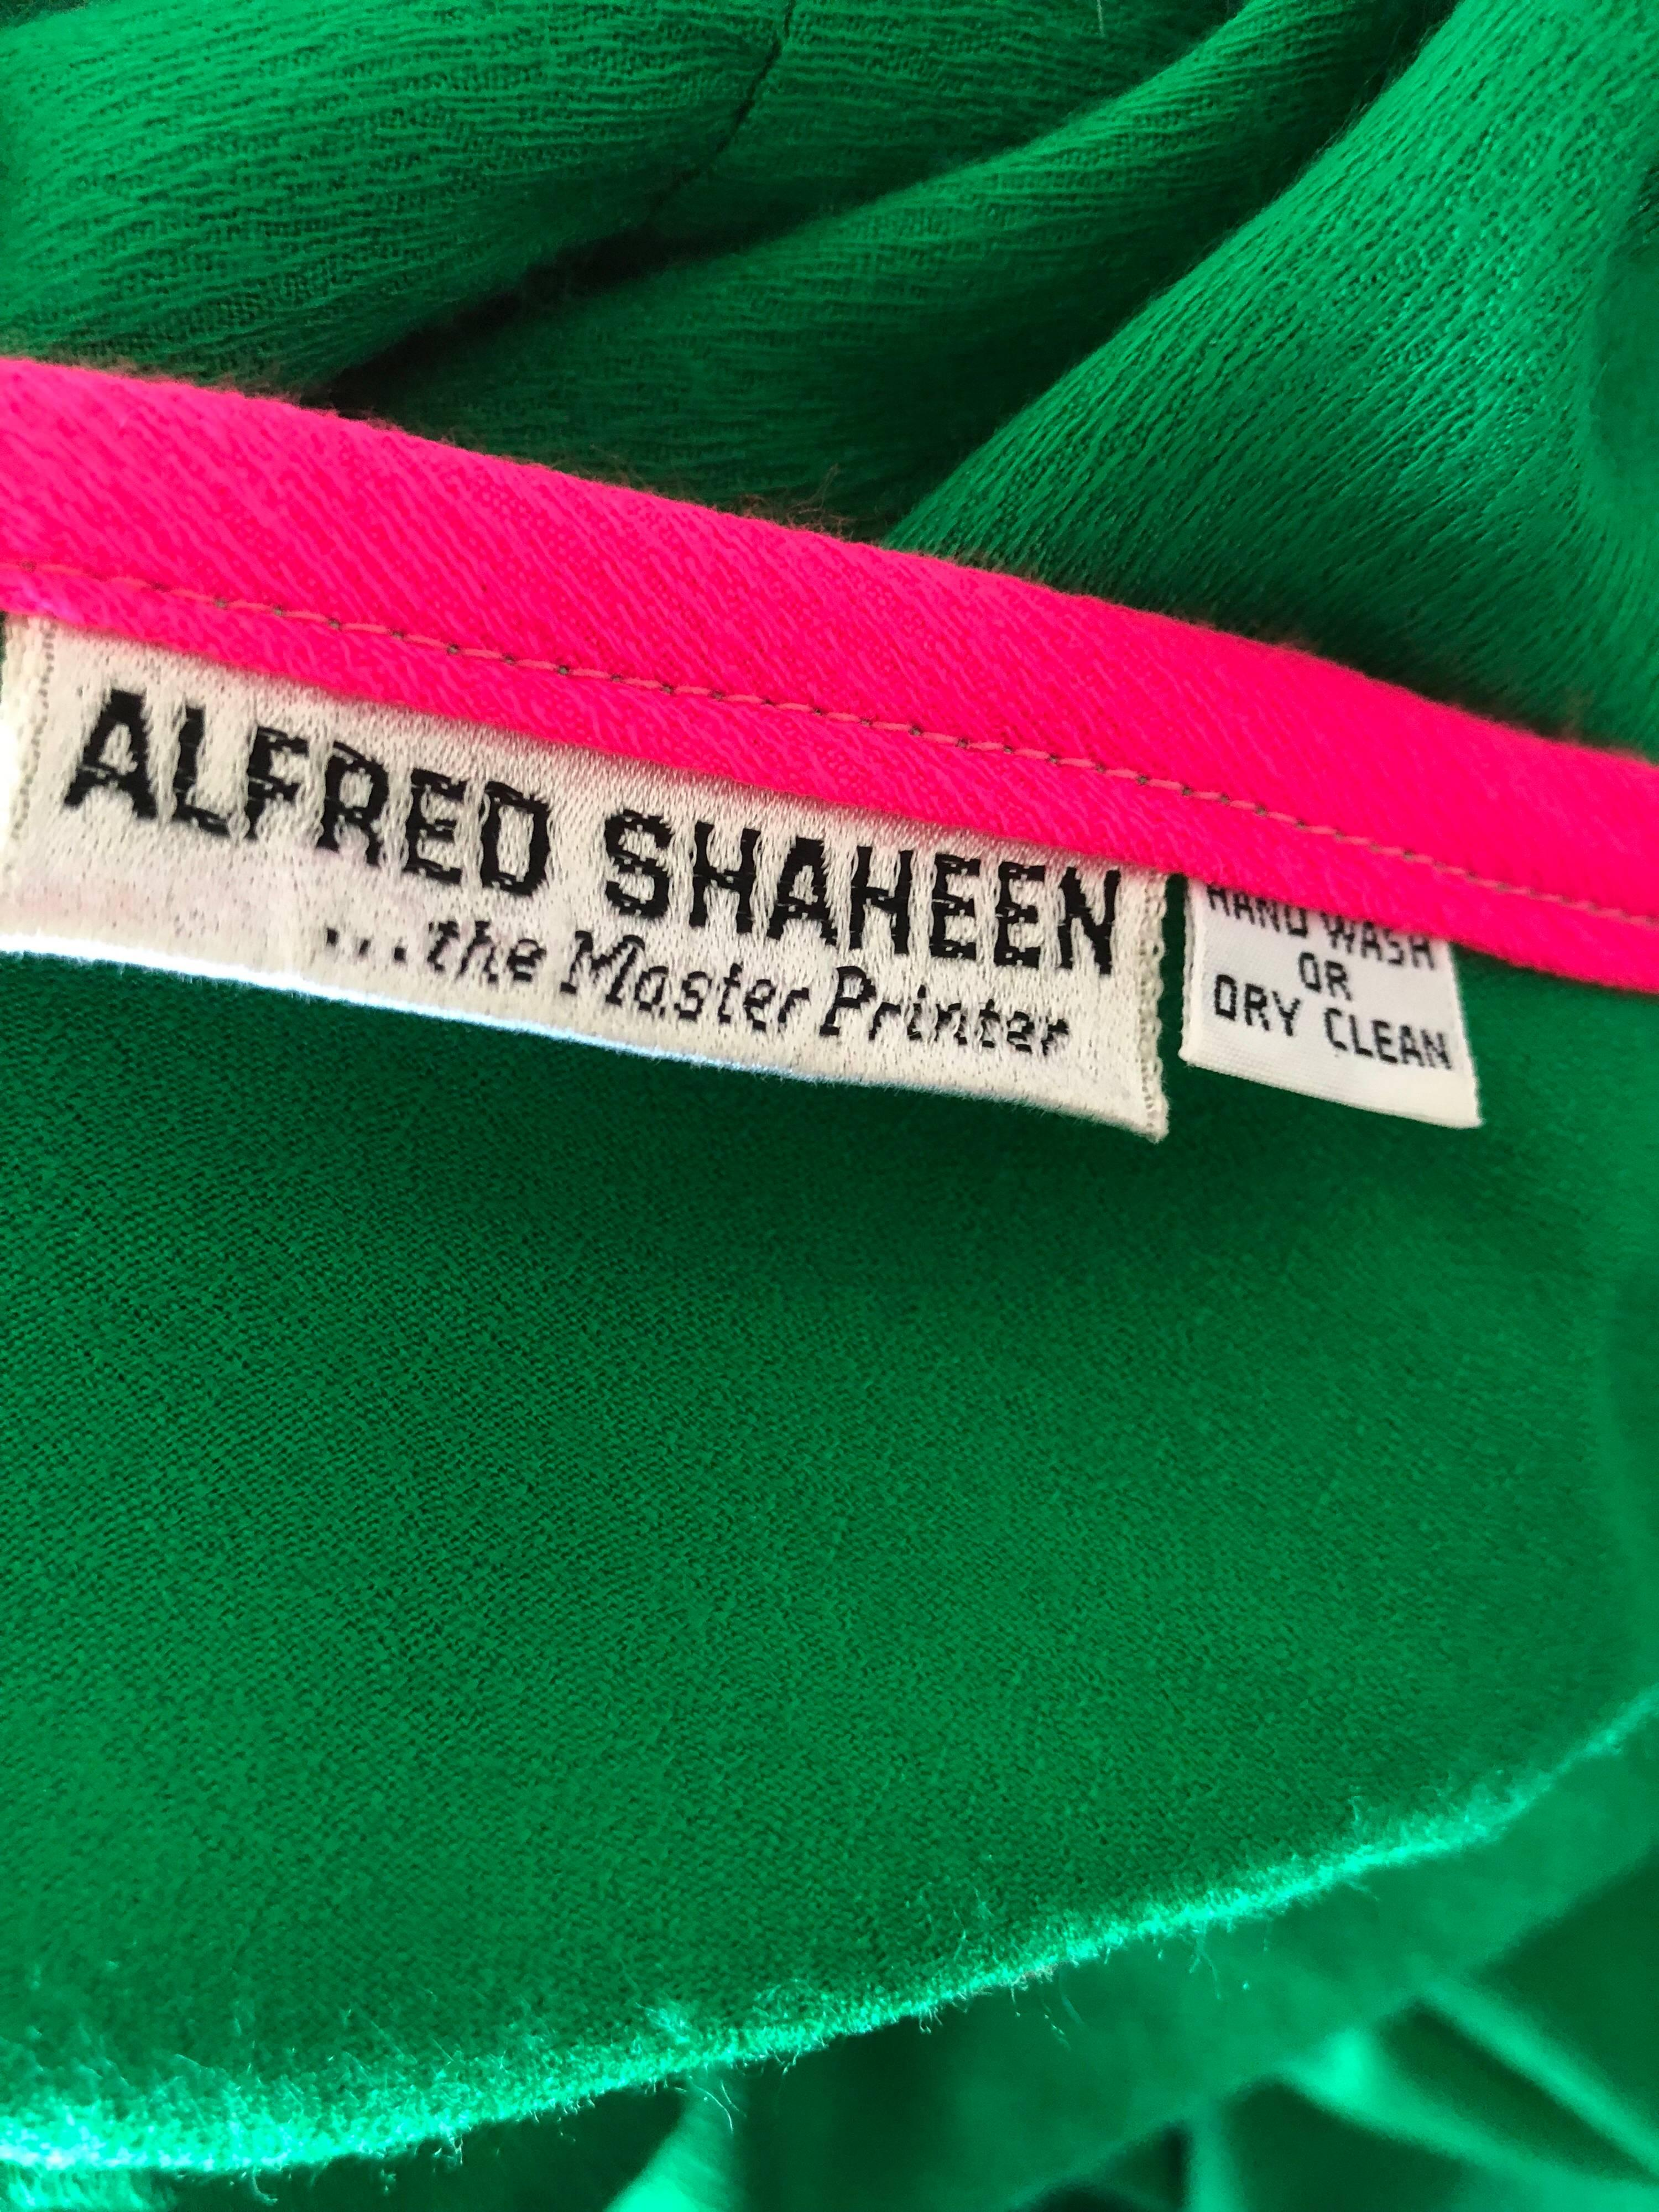 b38aa27200f Alfred Shaheen 1960s Large Size Kelly Green + Pink Vintage 60s Palazzo  Jumpsuit For Sale at 1stdibs